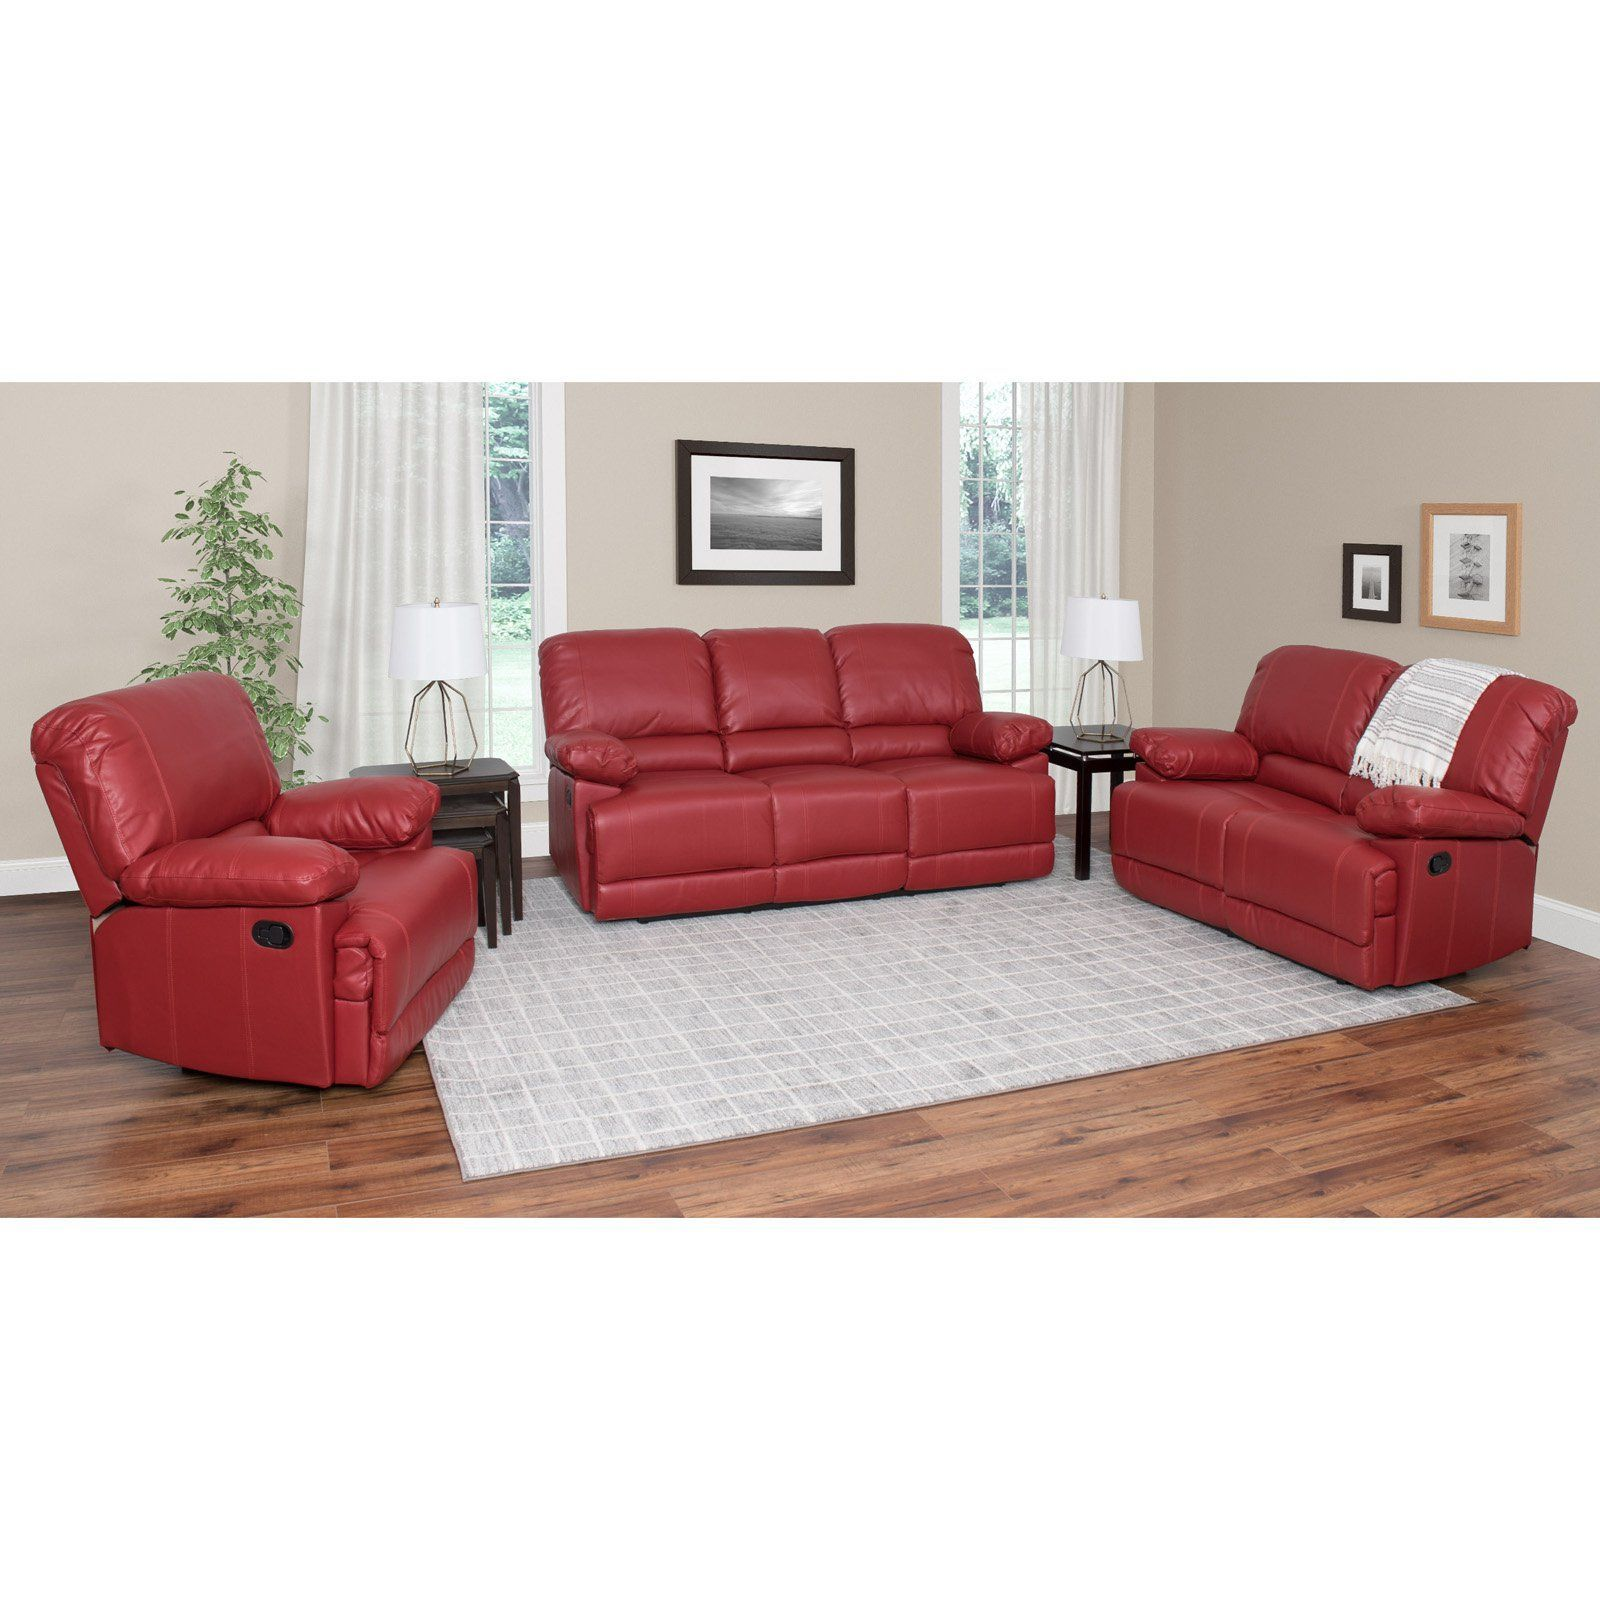 Corliving Lea 3 Piece Bonded Leather Reclining Sofa Set Products